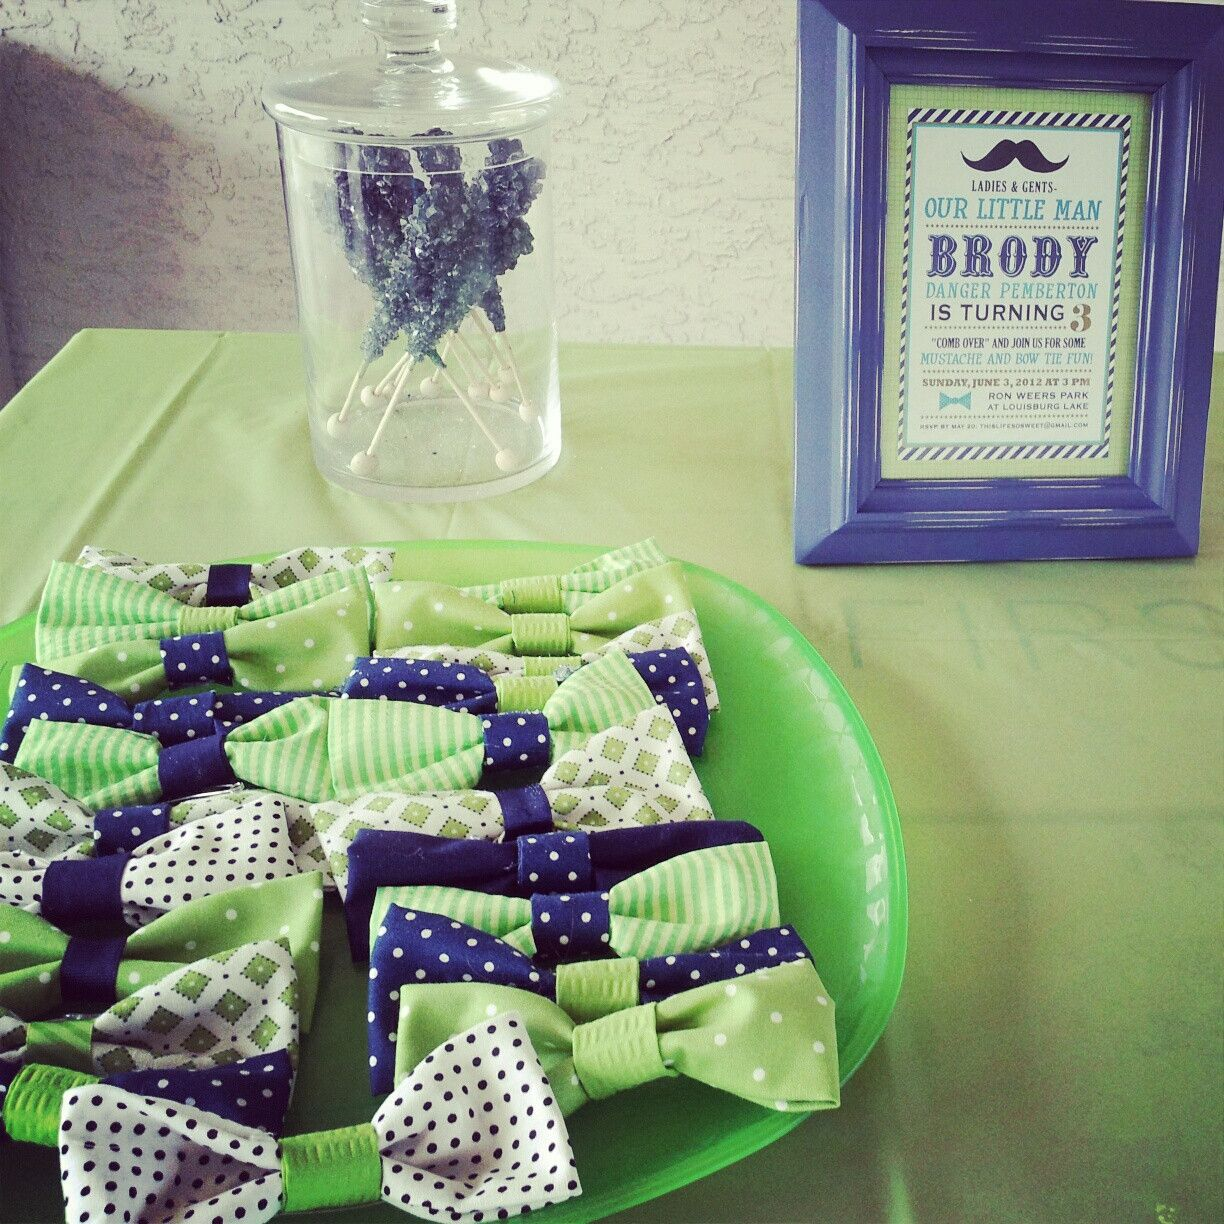 Little man birthday theme, bowtie party favors. Could be cute for a baby shower, too!